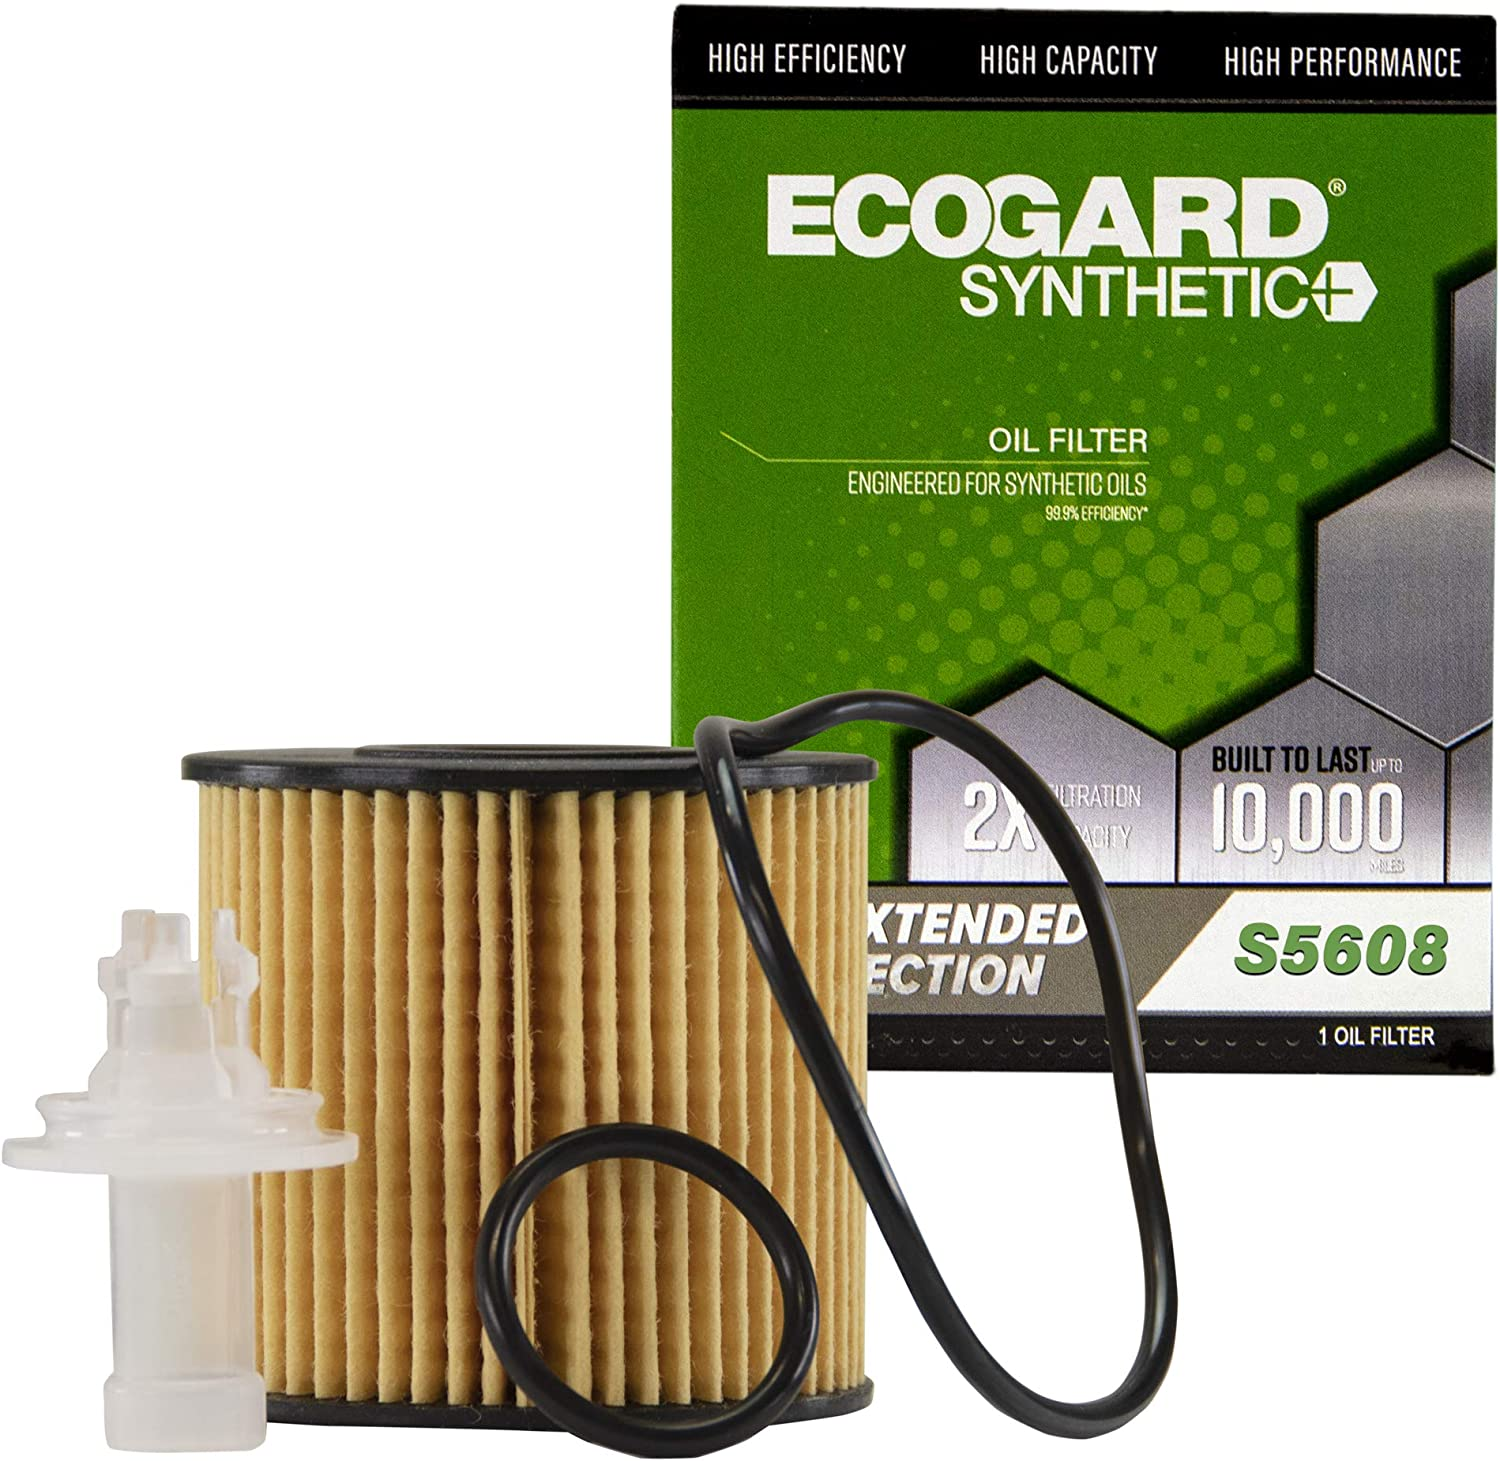 Oil Filter ECOGARD S4006 Synthetic